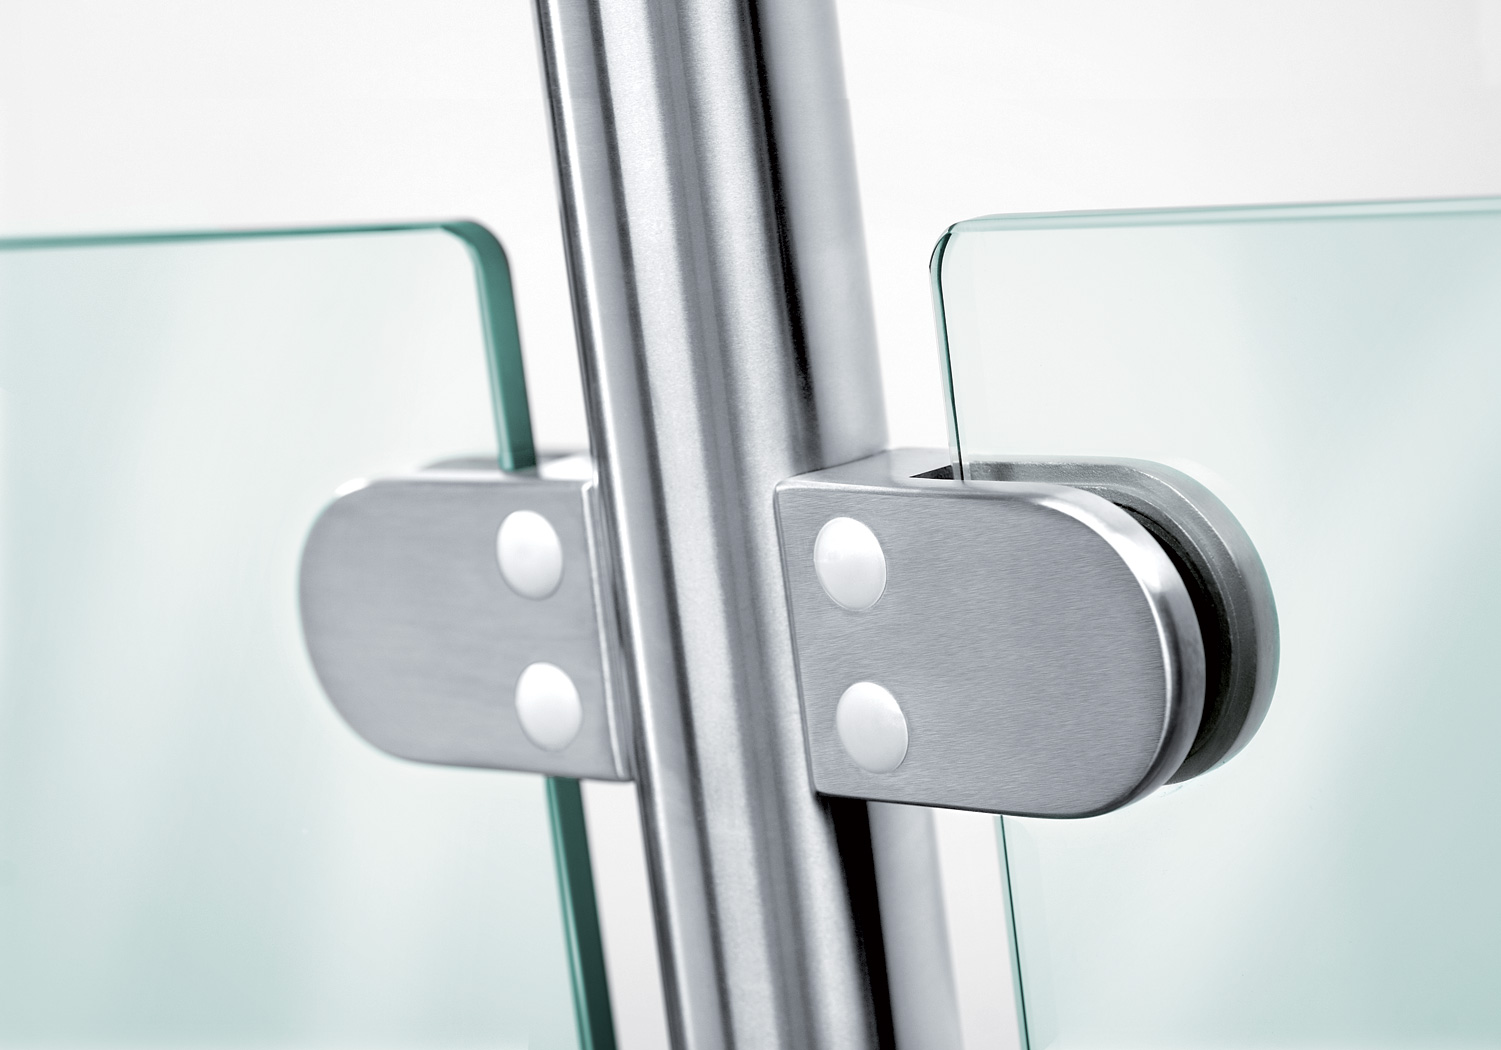 product-Stainless Steel Handrail Glass Clips GC-013F-JY-img